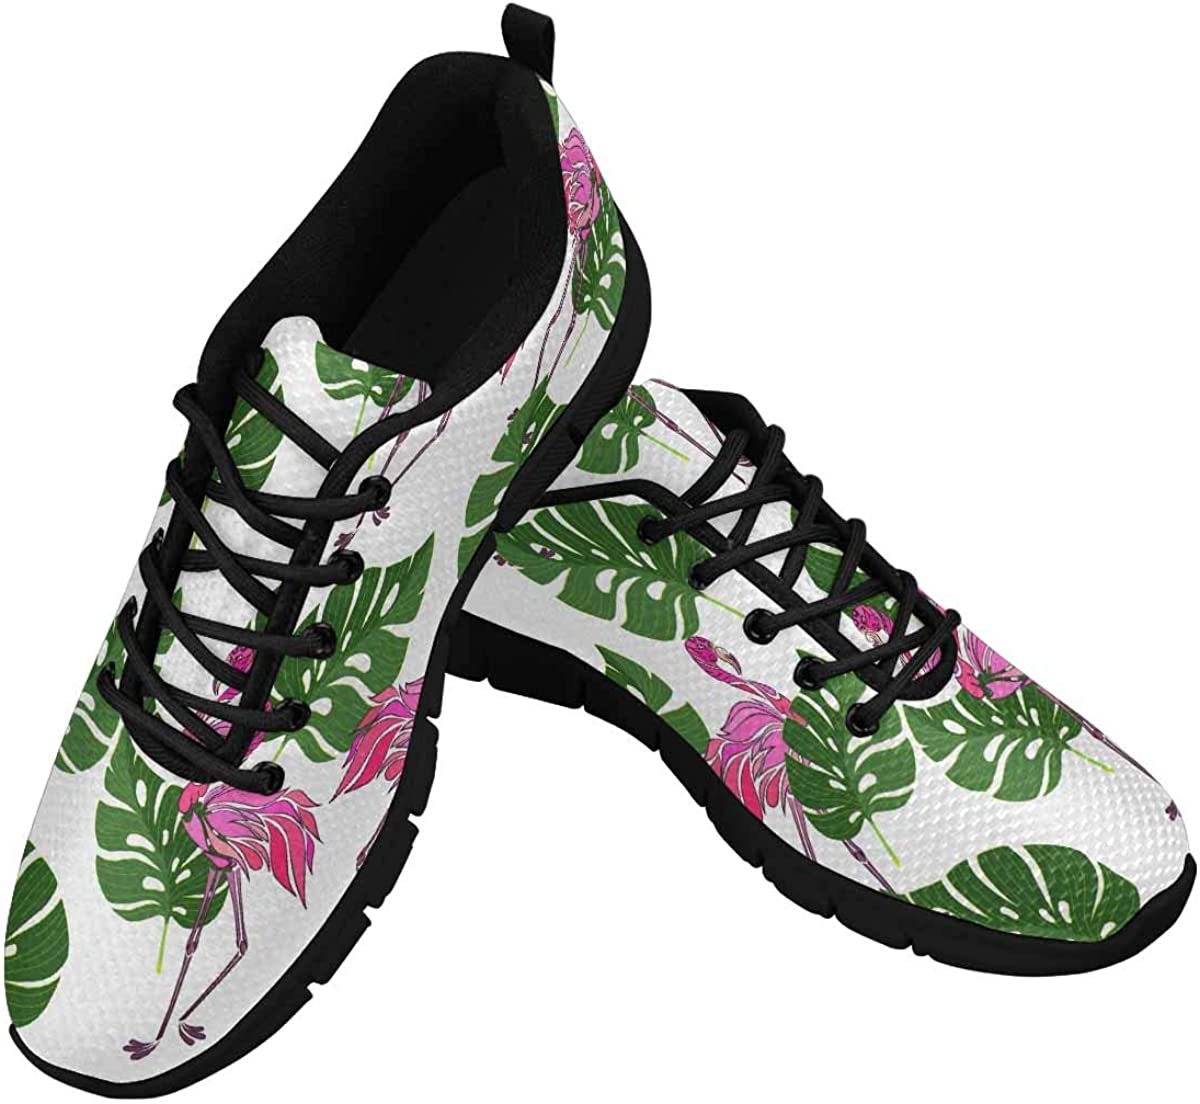 InterestPrint Tropical Monstera Leaves and Flamingos Women's Athletic Mesh Breathable Casual Sneakers Fashion Tennis Shoes